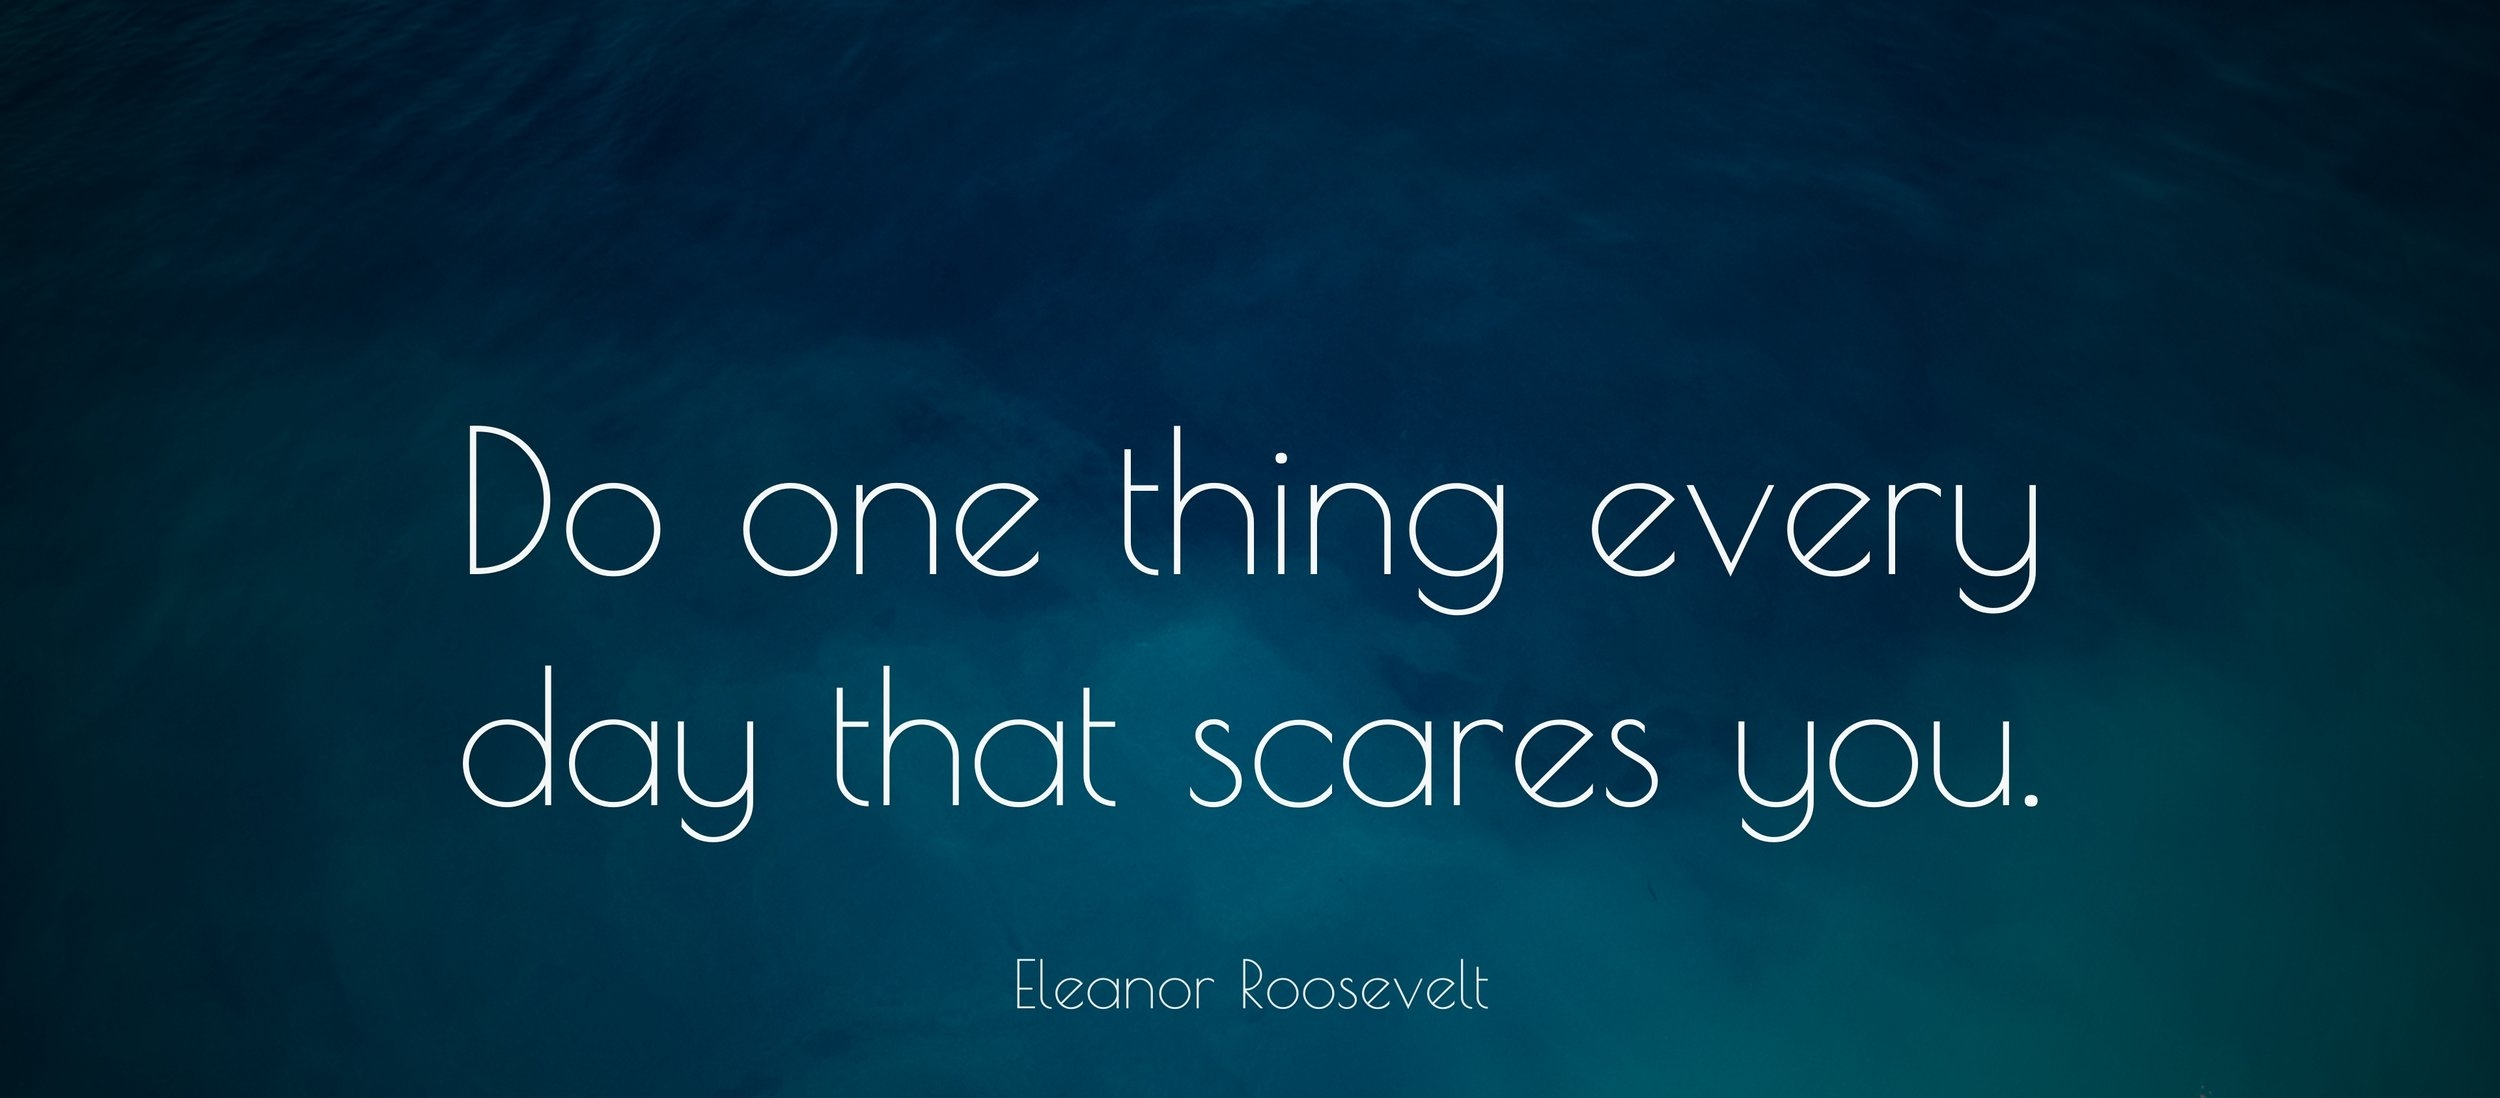 5970-Eleanor-Roosevelt-Quote-Do-one-thing-every-day-that-scares-you.jpg